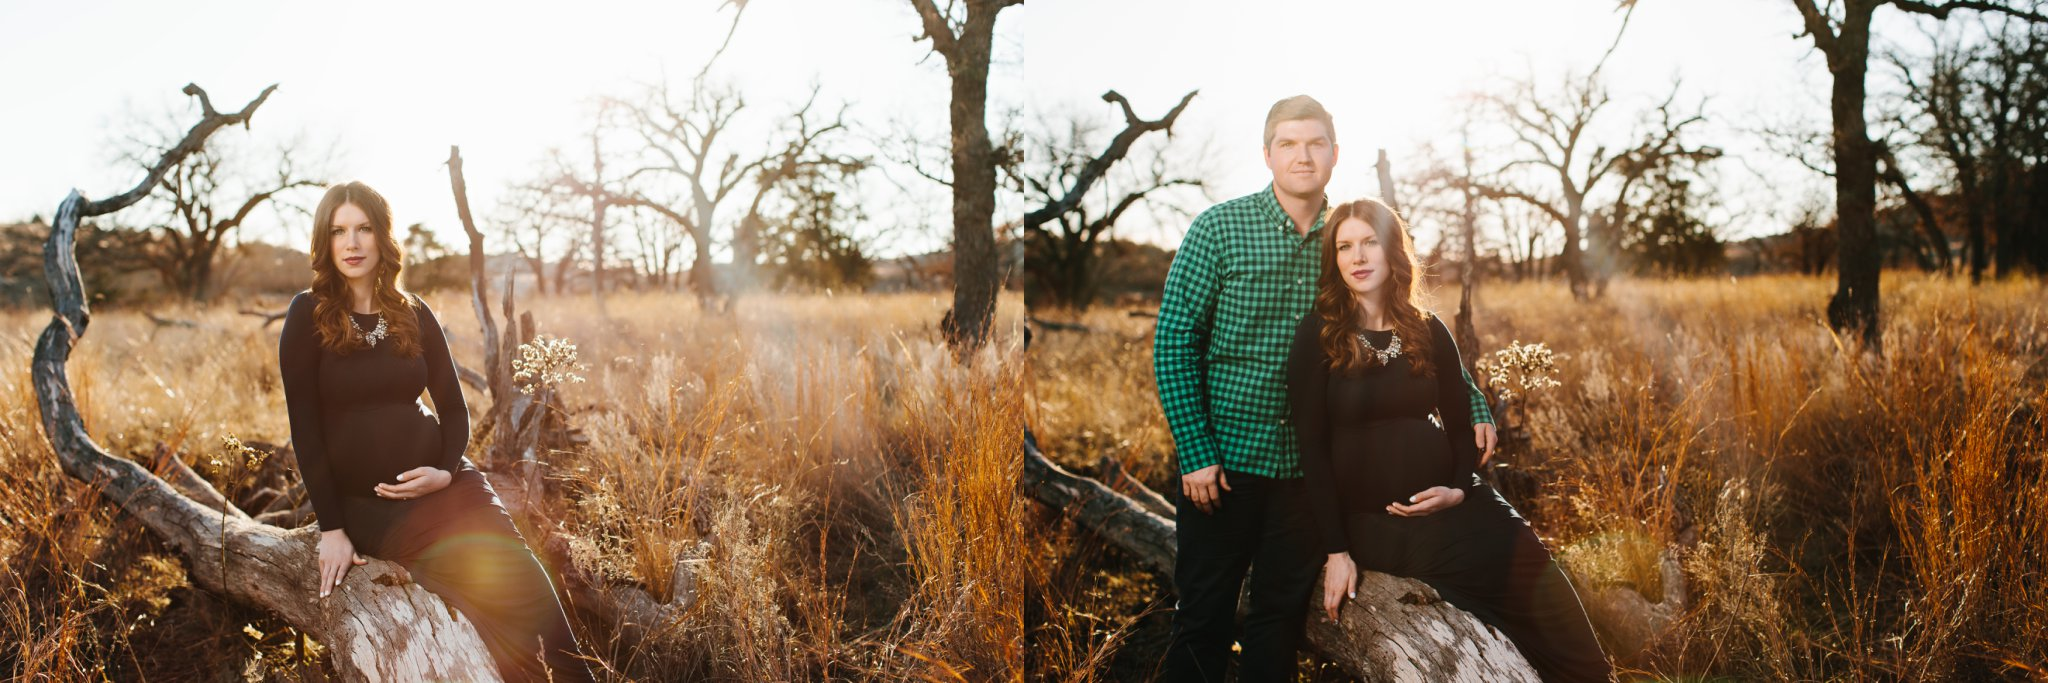 oklahoma-maternity-family-newborn-photography-wichita-mountains-mount-scott-sunset.jpg